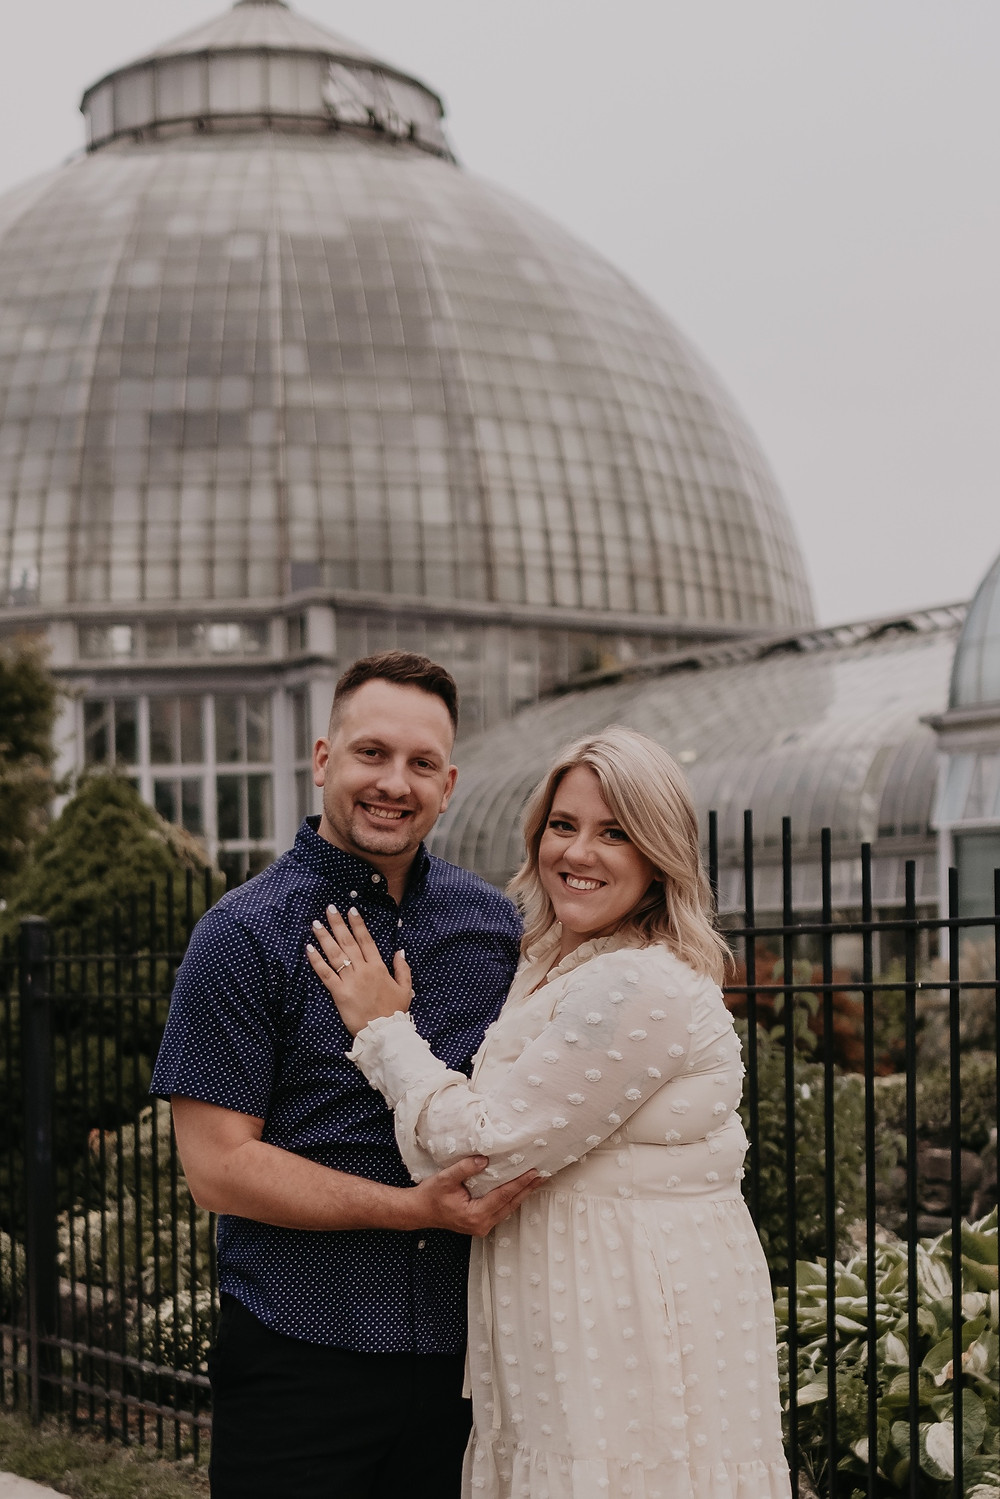 Belle Isle Conservatory engagement photo session in Detroit. Photographed by Nicole Leanne Photography.